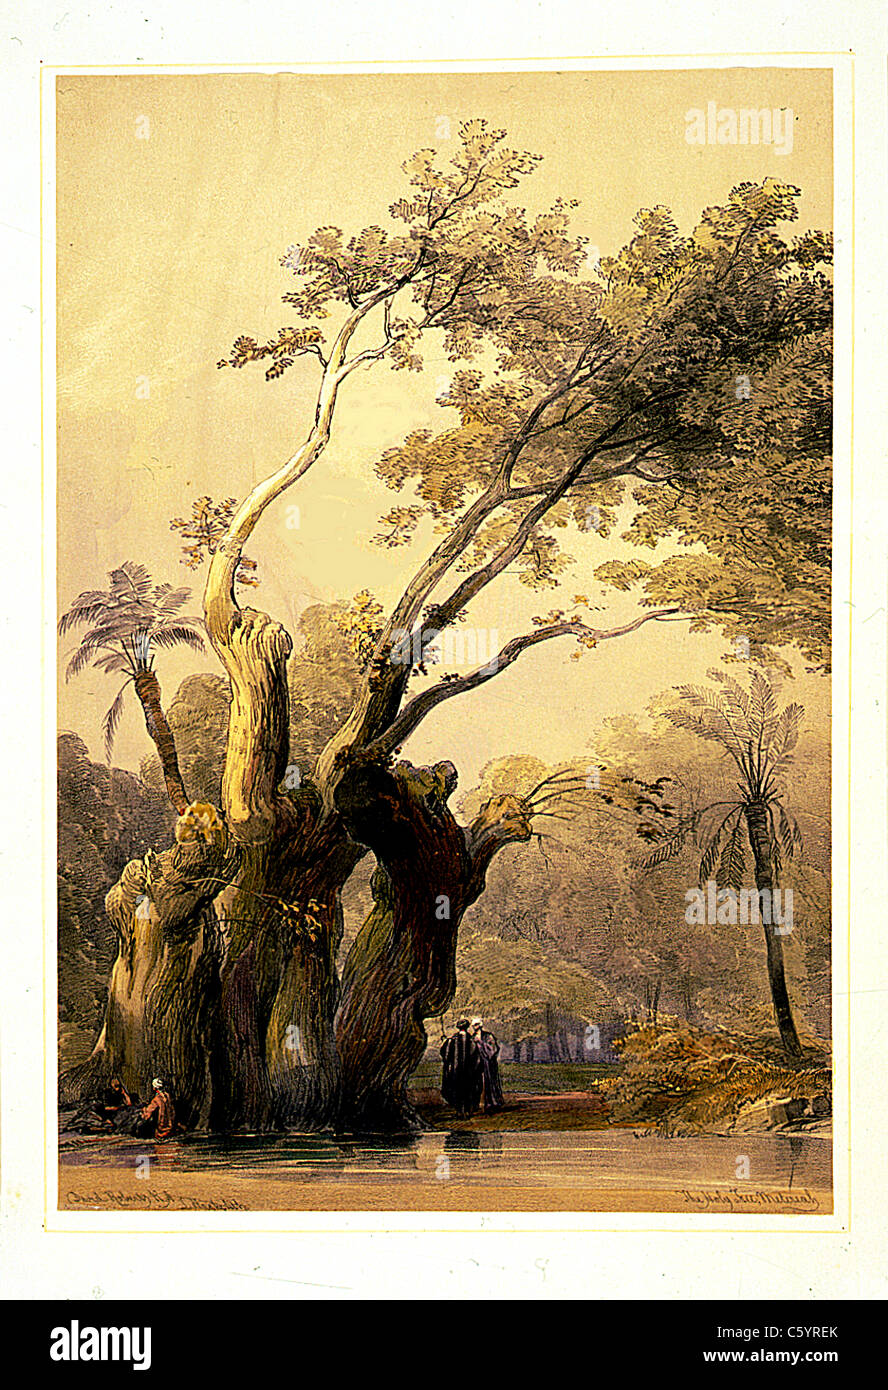 The holy tree, Metereah - David Roberts and Louis Haghe Lithograph - Stock Image